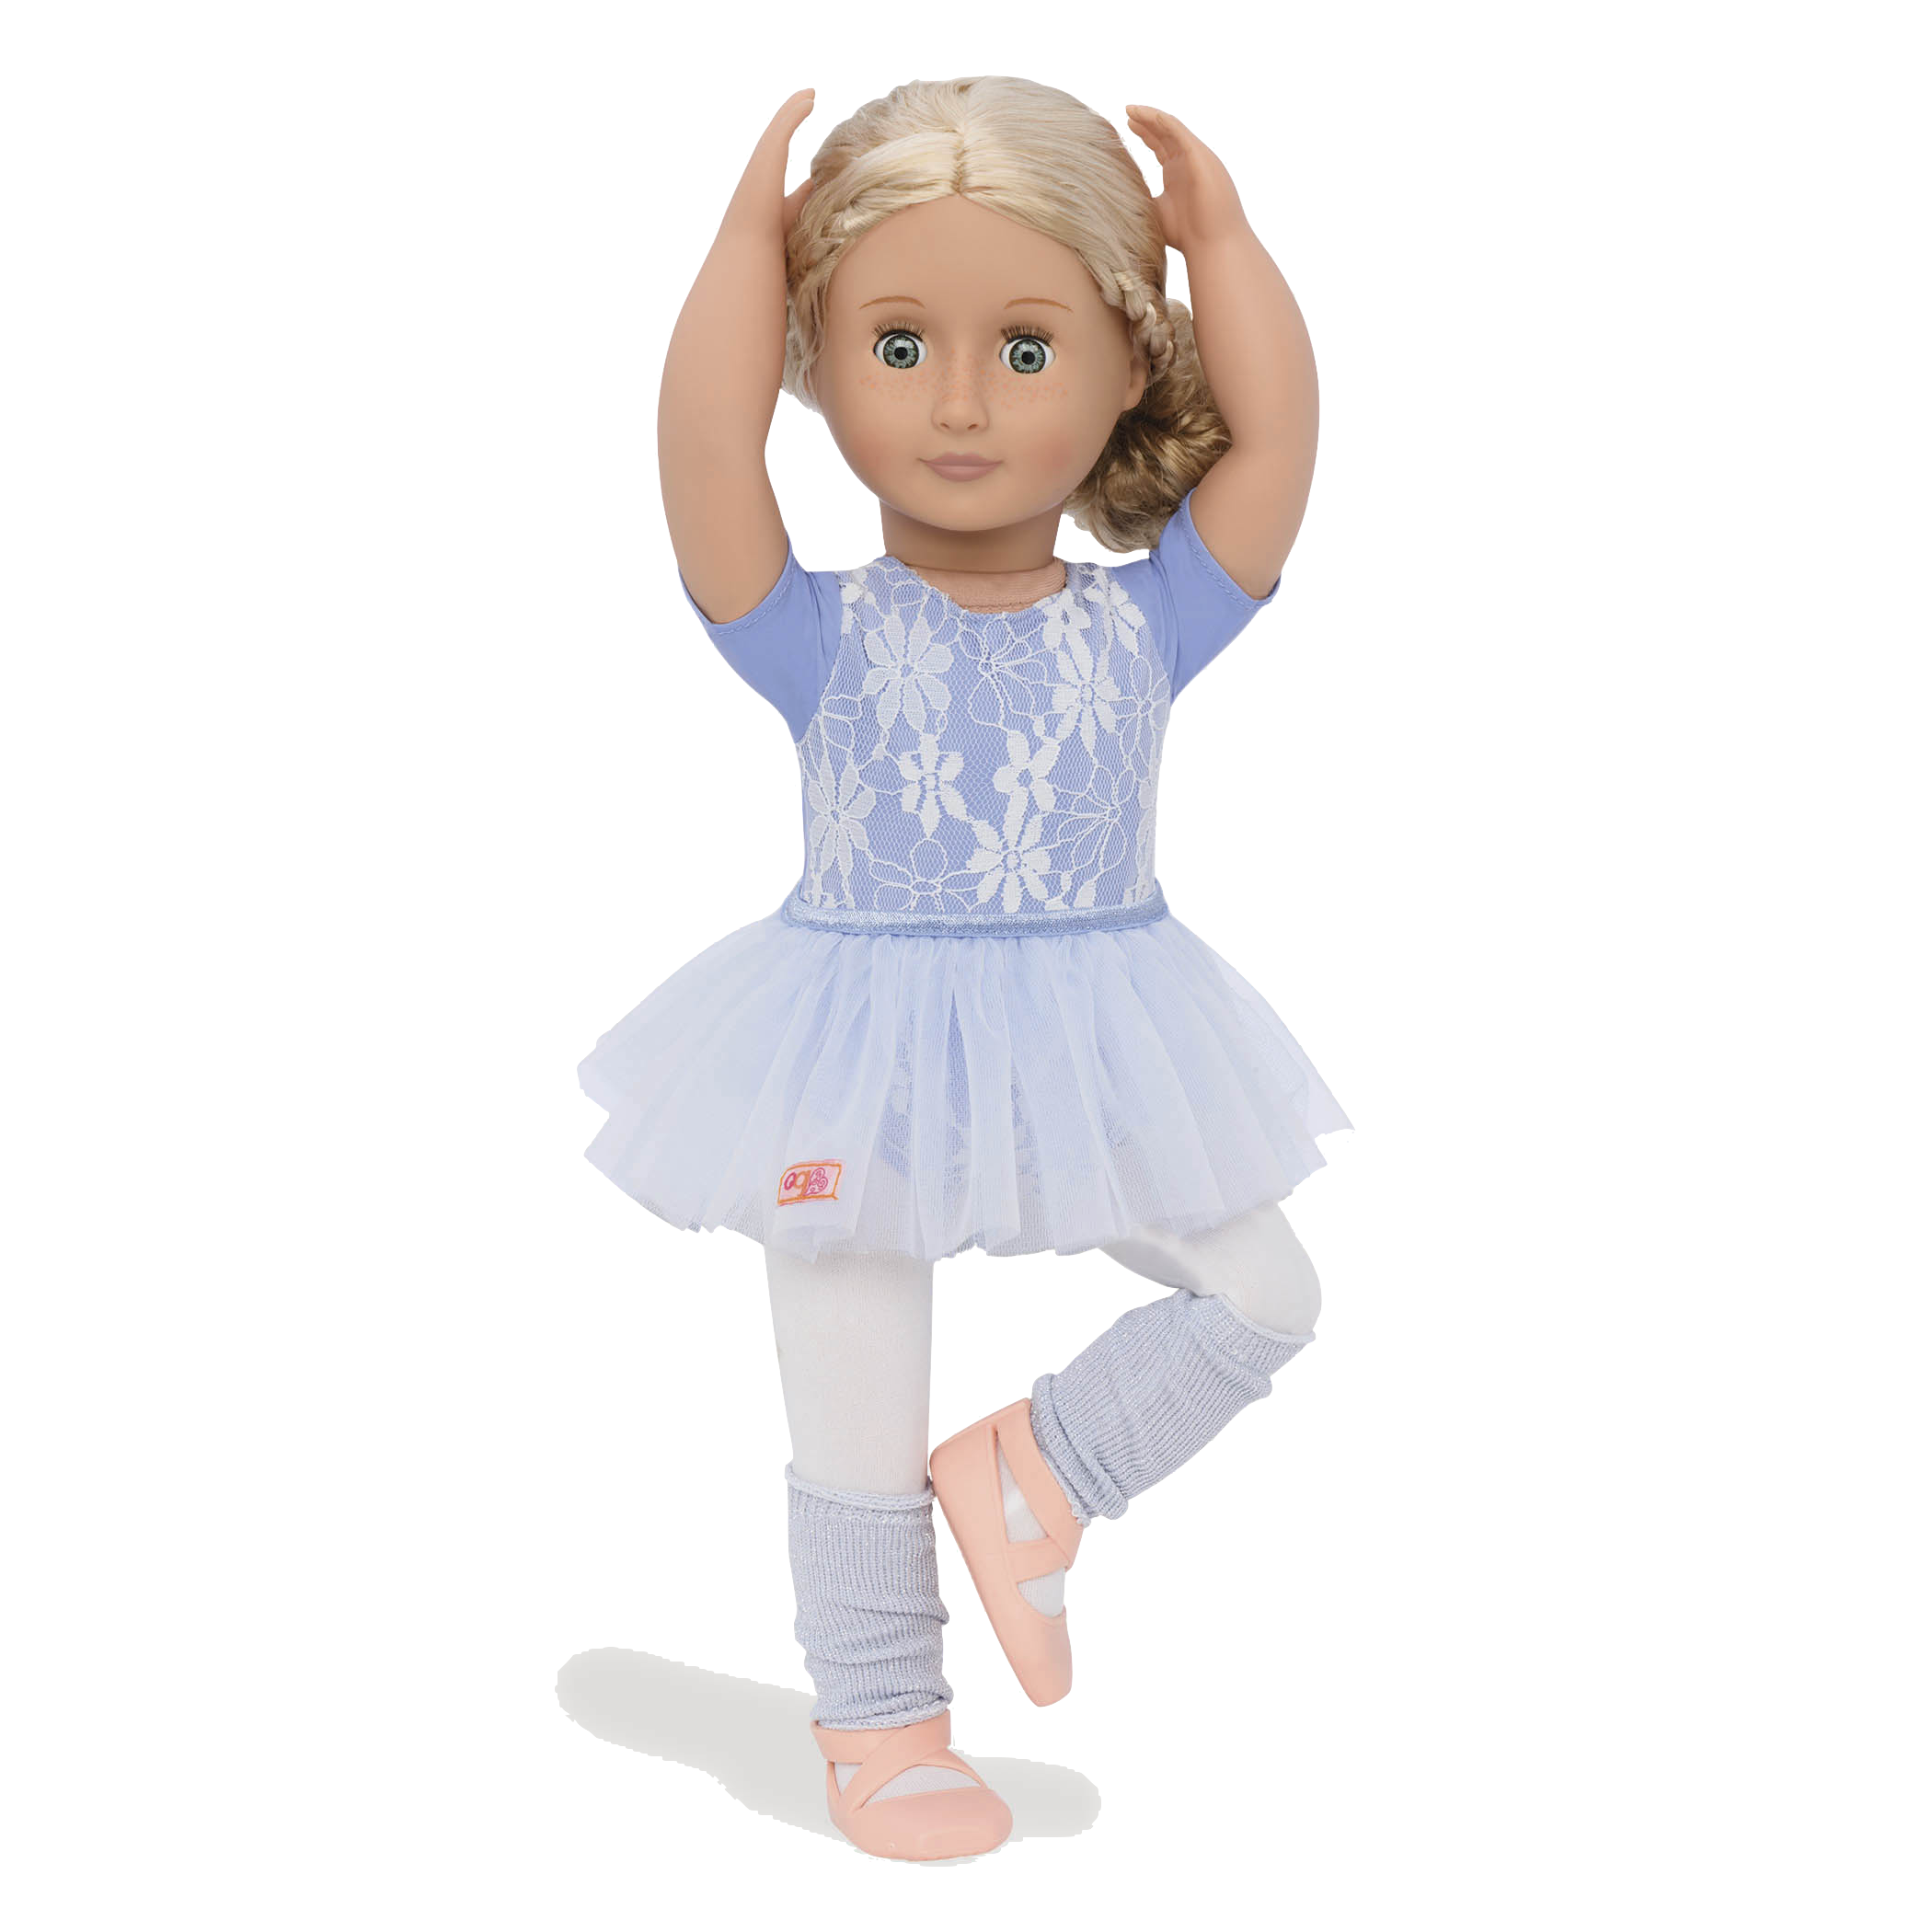 Coral wearing Ballet Belle outfit